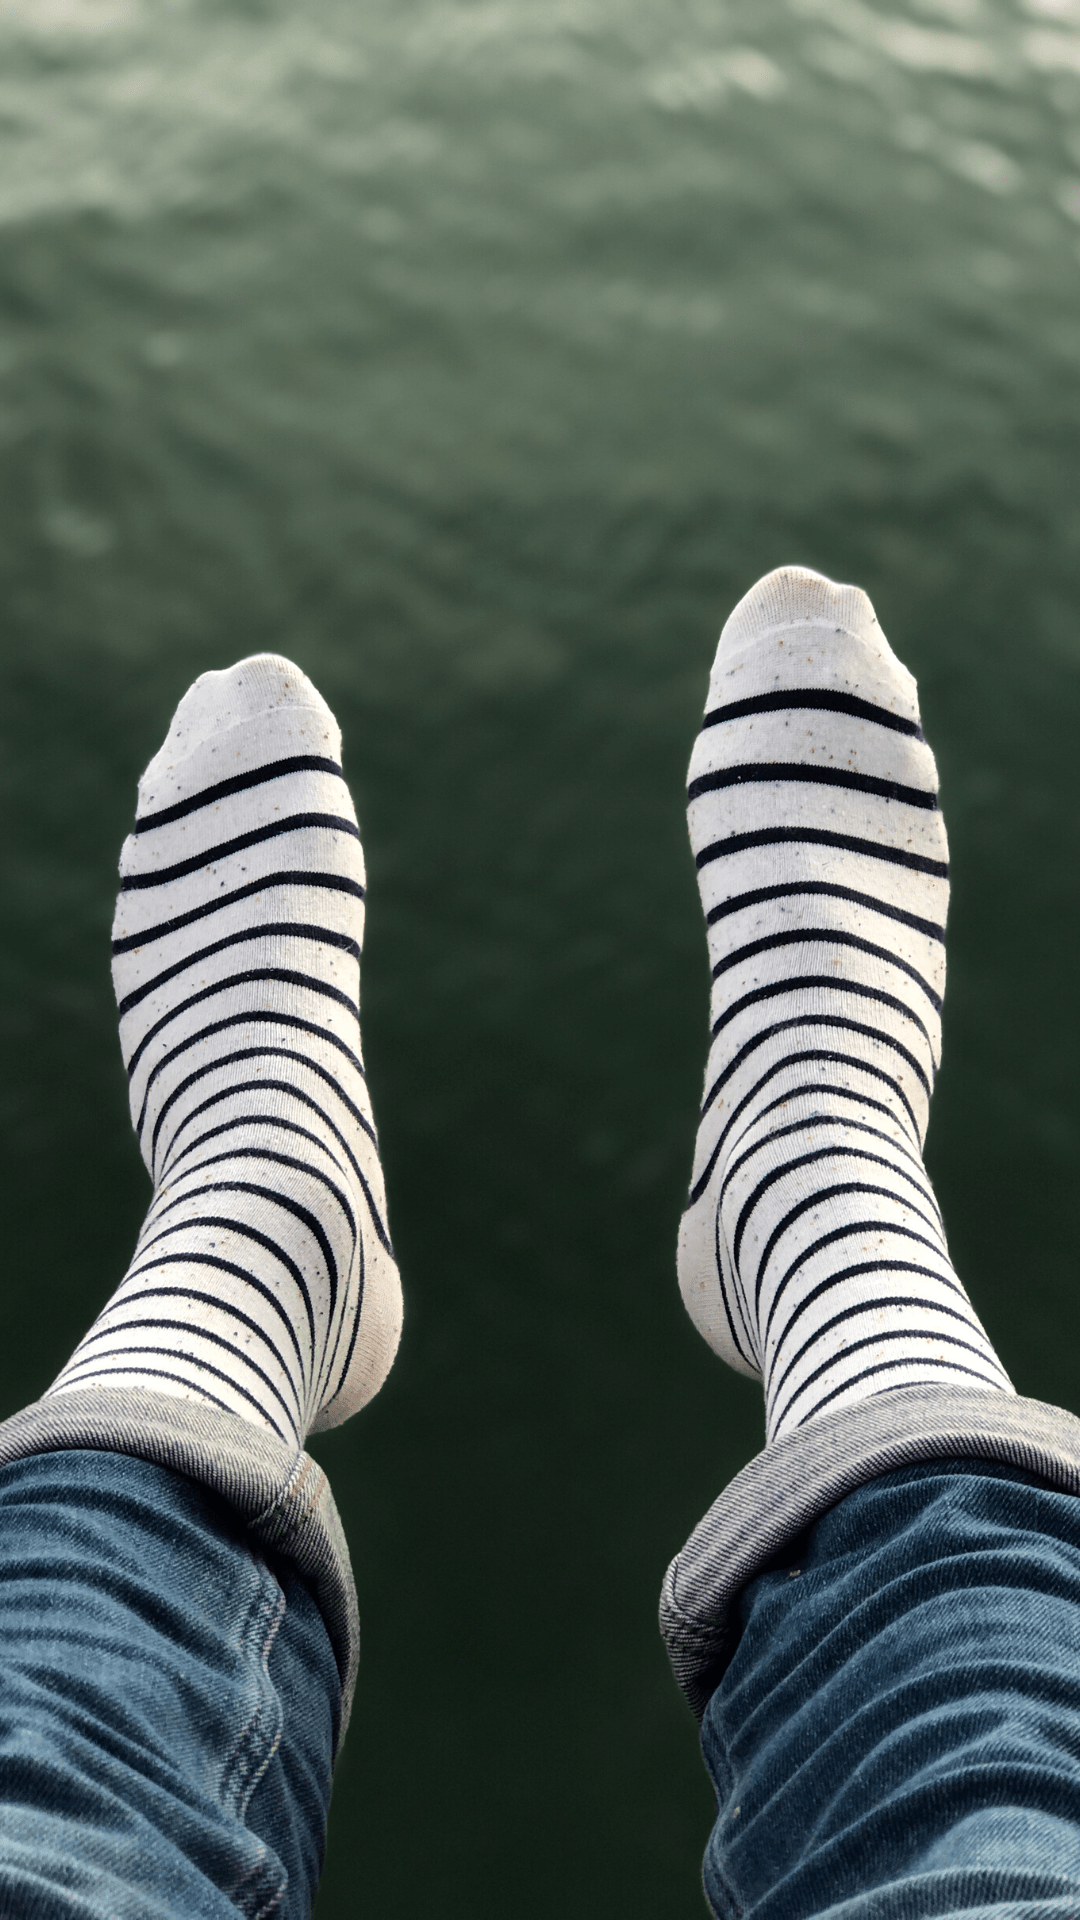 Photos de chaussettes blanches rayées made in france